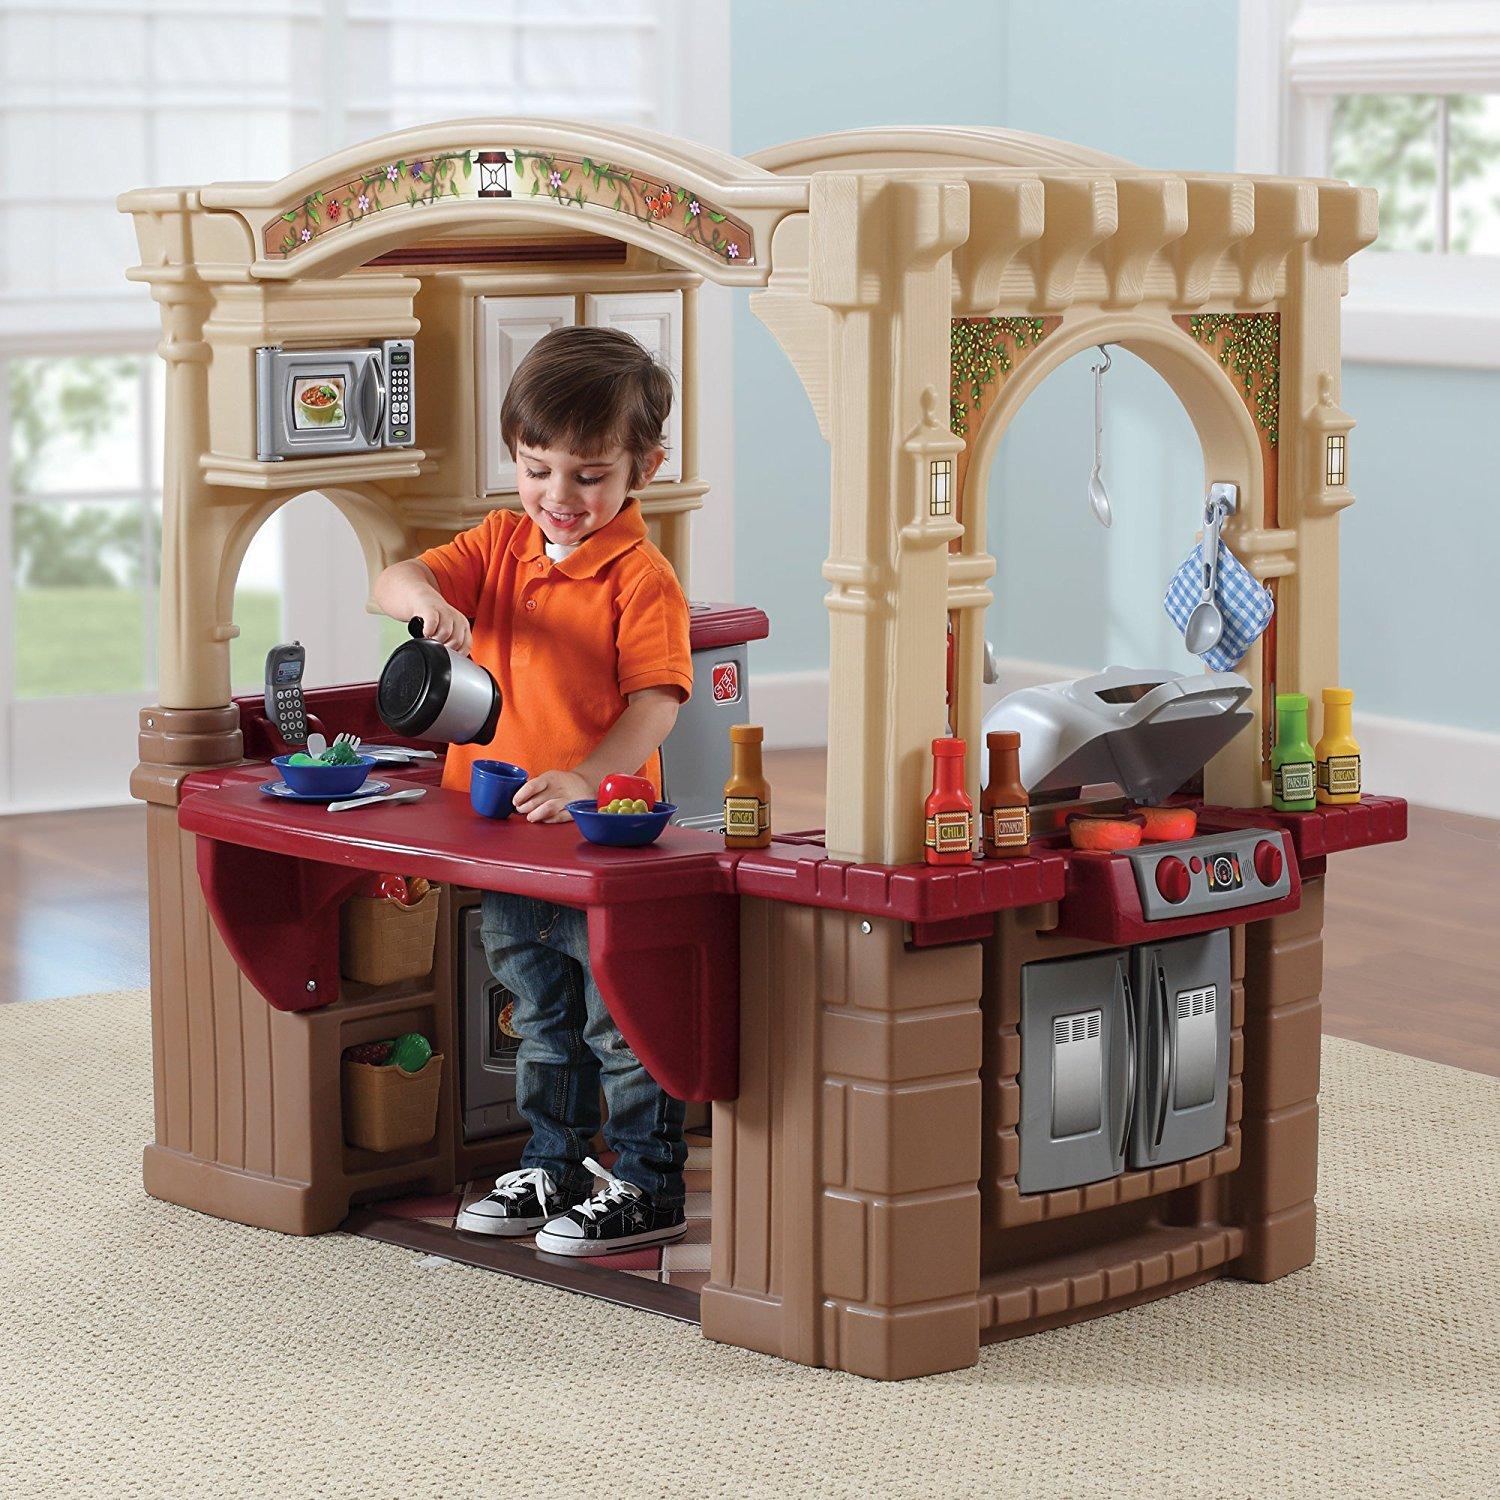 Step2 Unisex Toy Kitchen & Grill